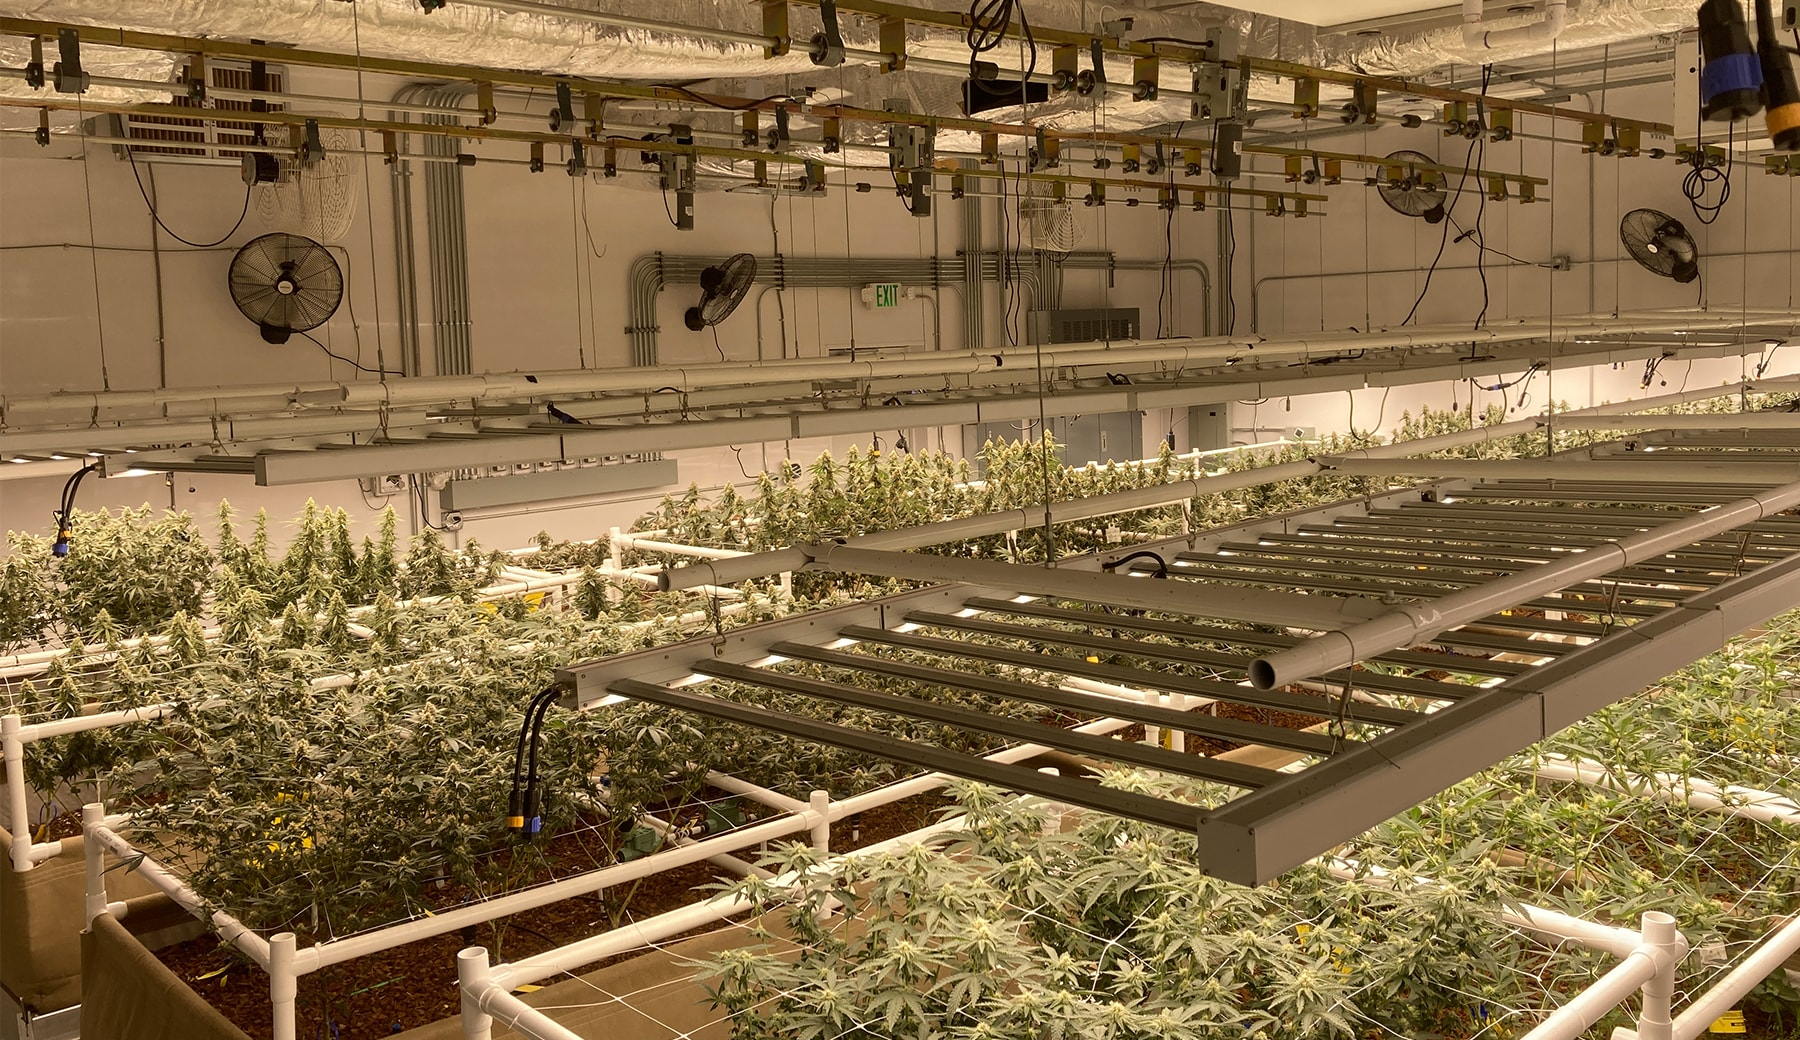 top down view of grow light lifts